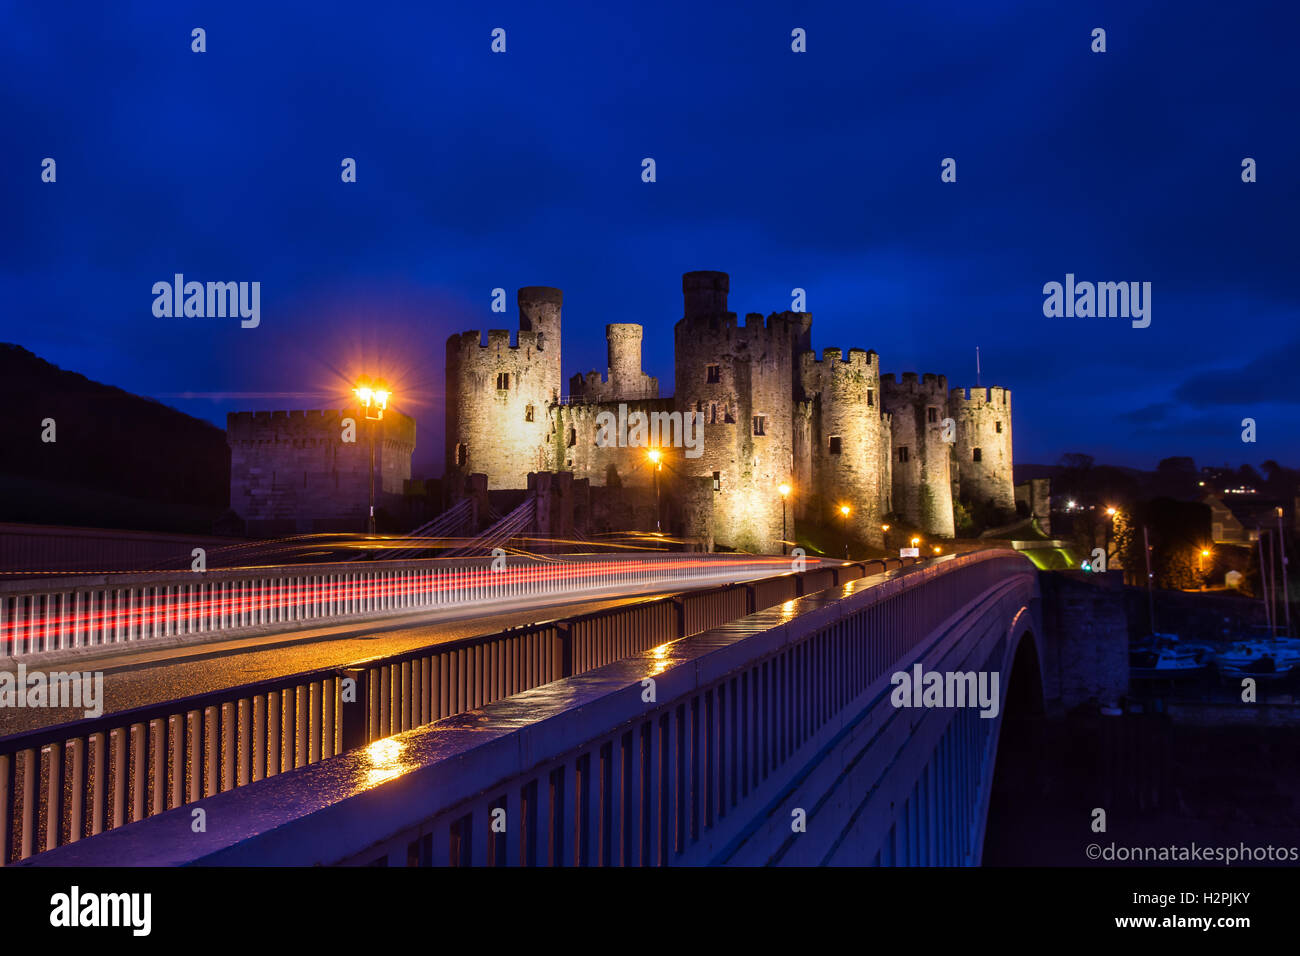 Conwy Castle at night, North wales, England, UK - Stock Image